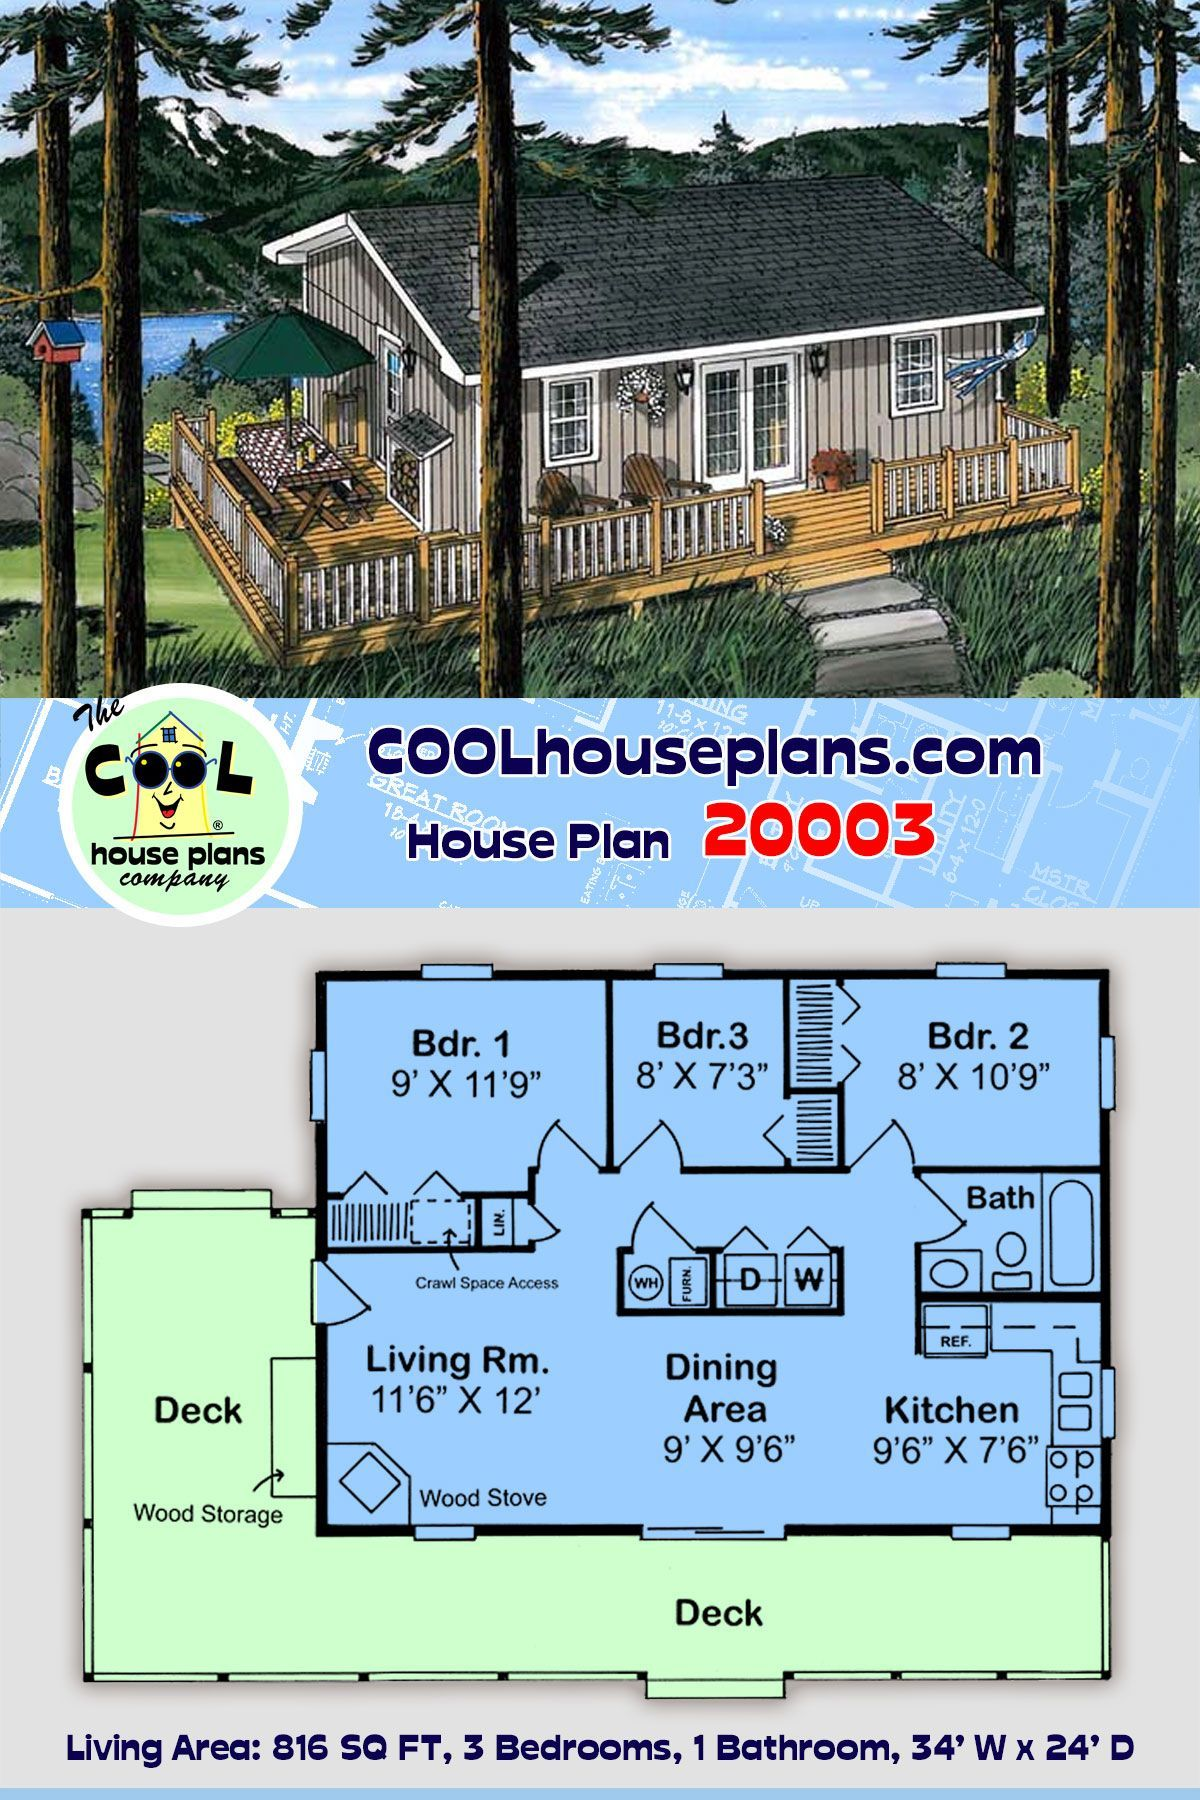 Affordable Small House Plan With 816 Sq Ft 3 Bedroom And 1 Bath In 2020 Small Cabin Plans House Plans Cabin Floor Plans